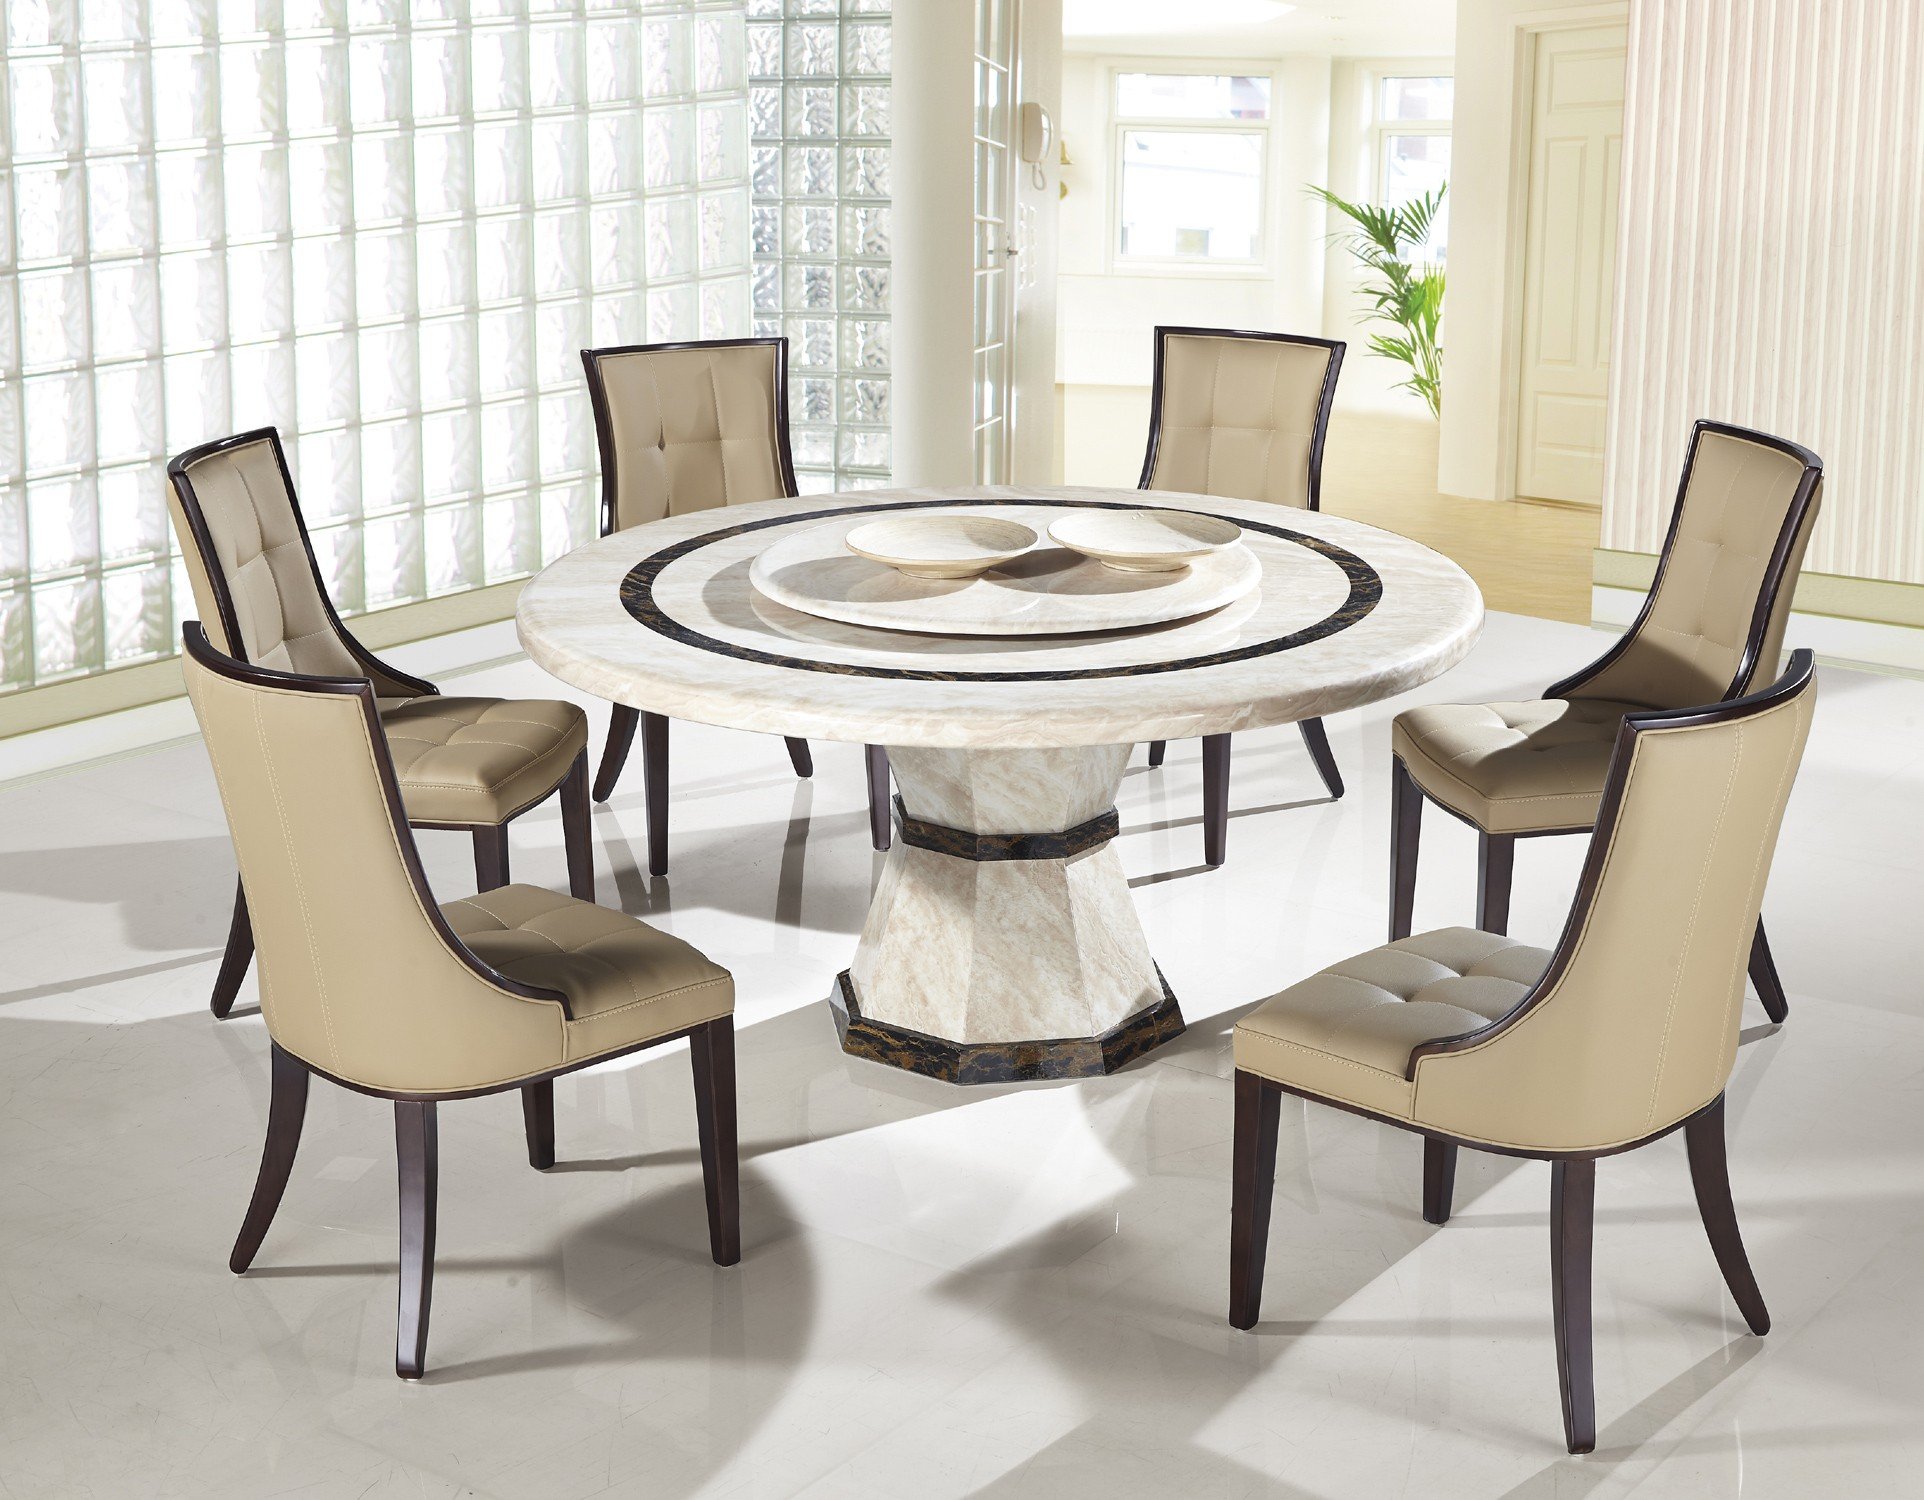 Modern round dining set shop for affordable home for Contemporary round dining table